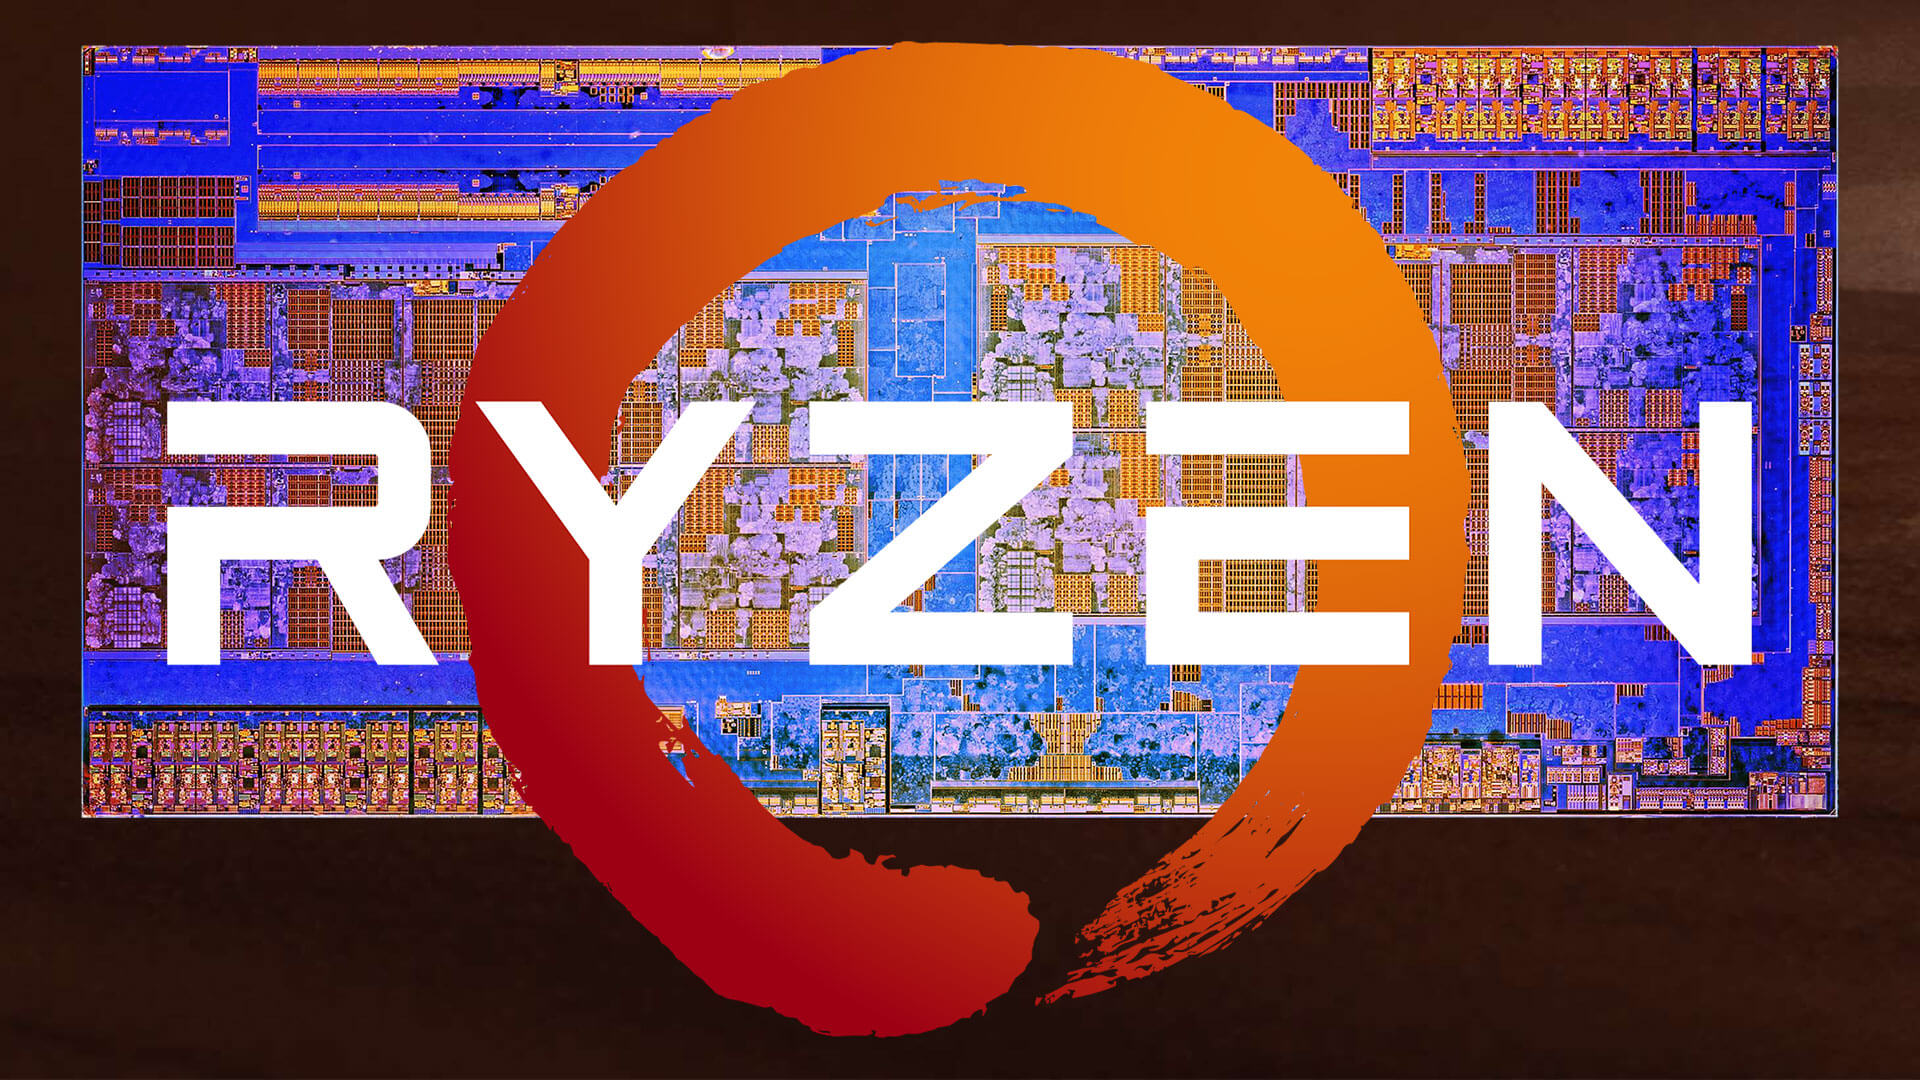 AMD is expected to launch new X570 chipset with PCI-E 4.0 at Computex